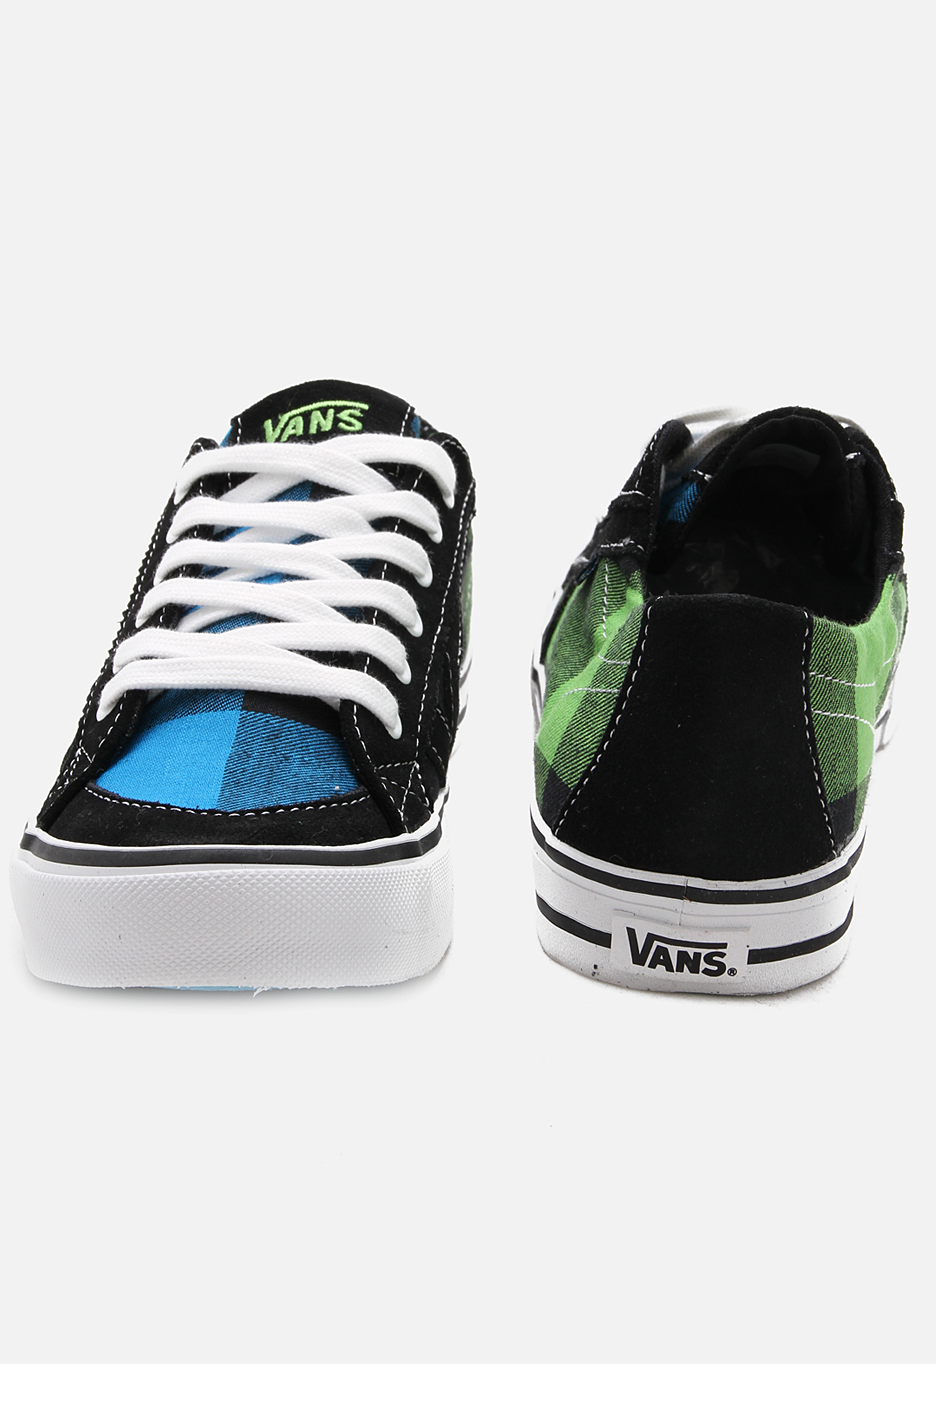 Vans - Tory Black Green - Girl Shoes - Impericon.com Worldwide e5233cd07